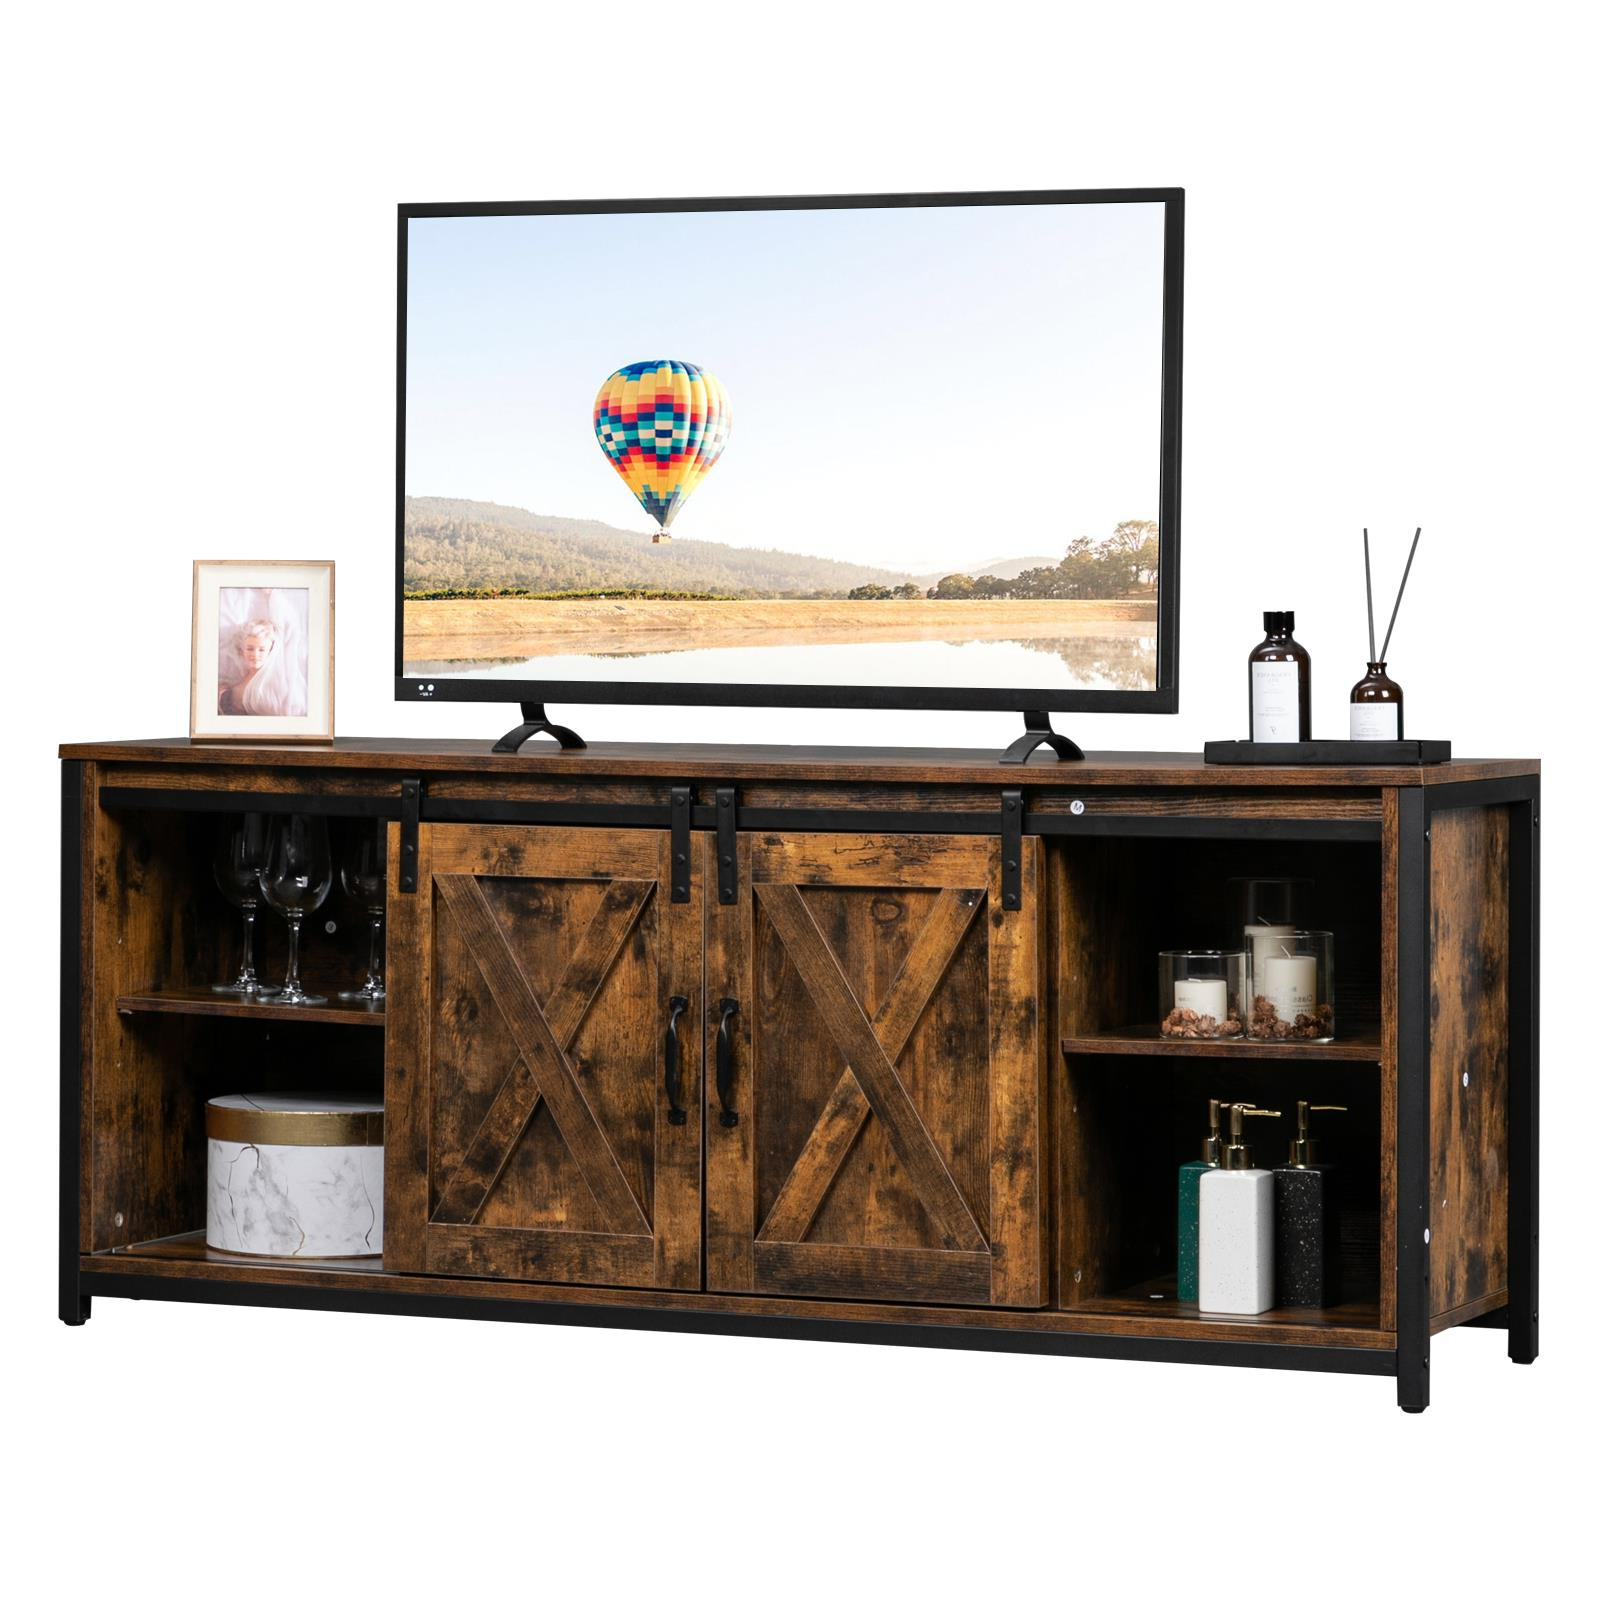 Ktaxon Sliding Barn Doors Tv Stand For 65 Inch Tv Regarding Tv Stands With Sliding Barn Door Console In Rustic Oak (View 5 of 20)